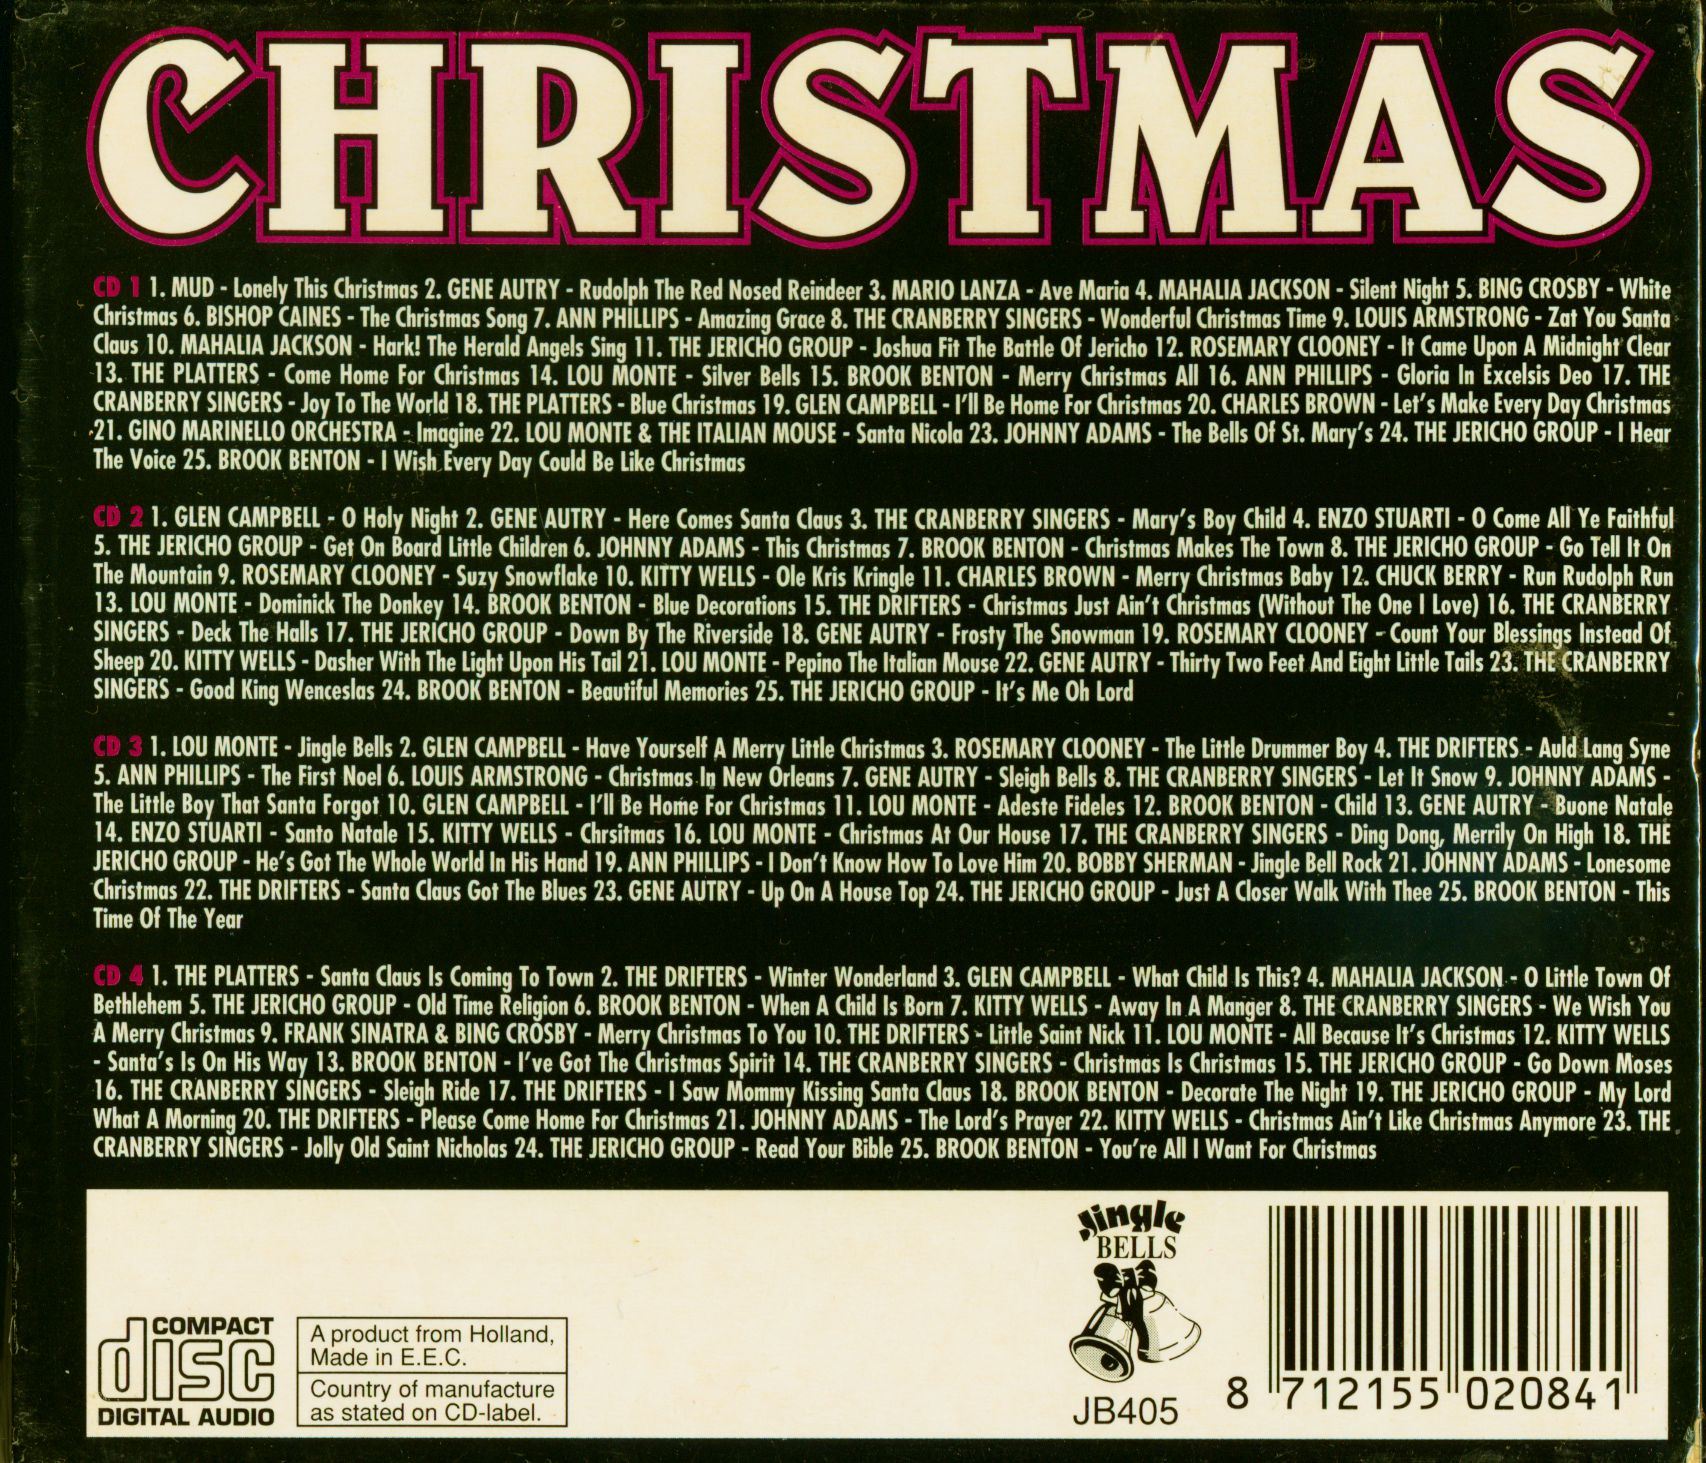 Ultimate Christmas Collection: Various CD: The Ultimate Christmas Collection (4-CD